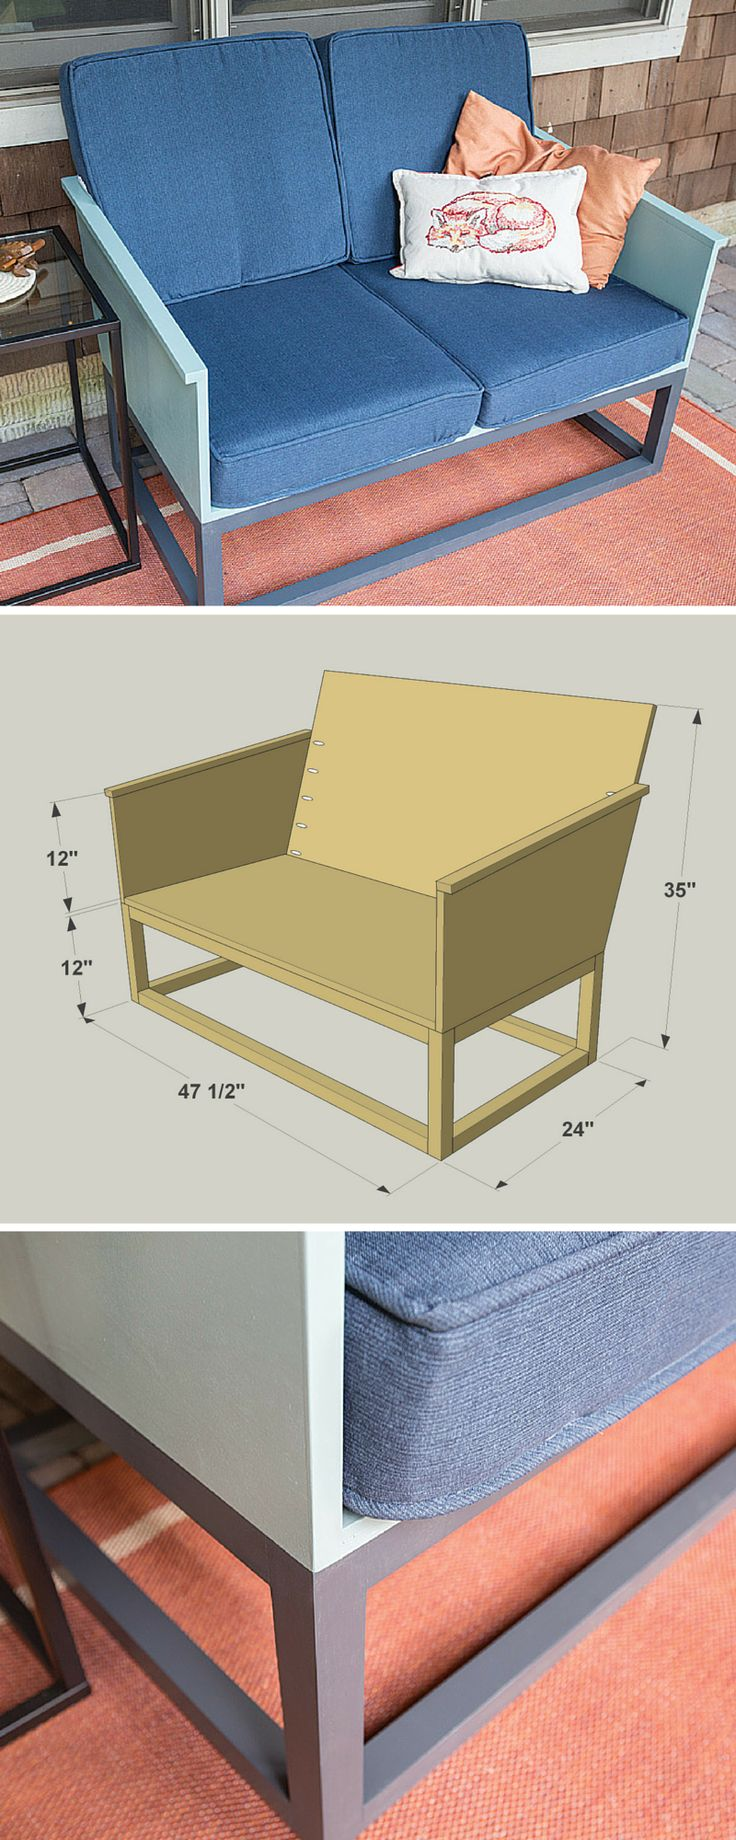 Turn your sunroom or porch into a comfortable place to hang out with this love seat. With indoor/outdoor cushions, it's perfect for a covered porch or patio, or for a three-season porch. Plus, you can build it easily using one sheet of plywood, a few boards, and a set of off-the-shelf cushion. Get the free DIY plans at buildsomething.com